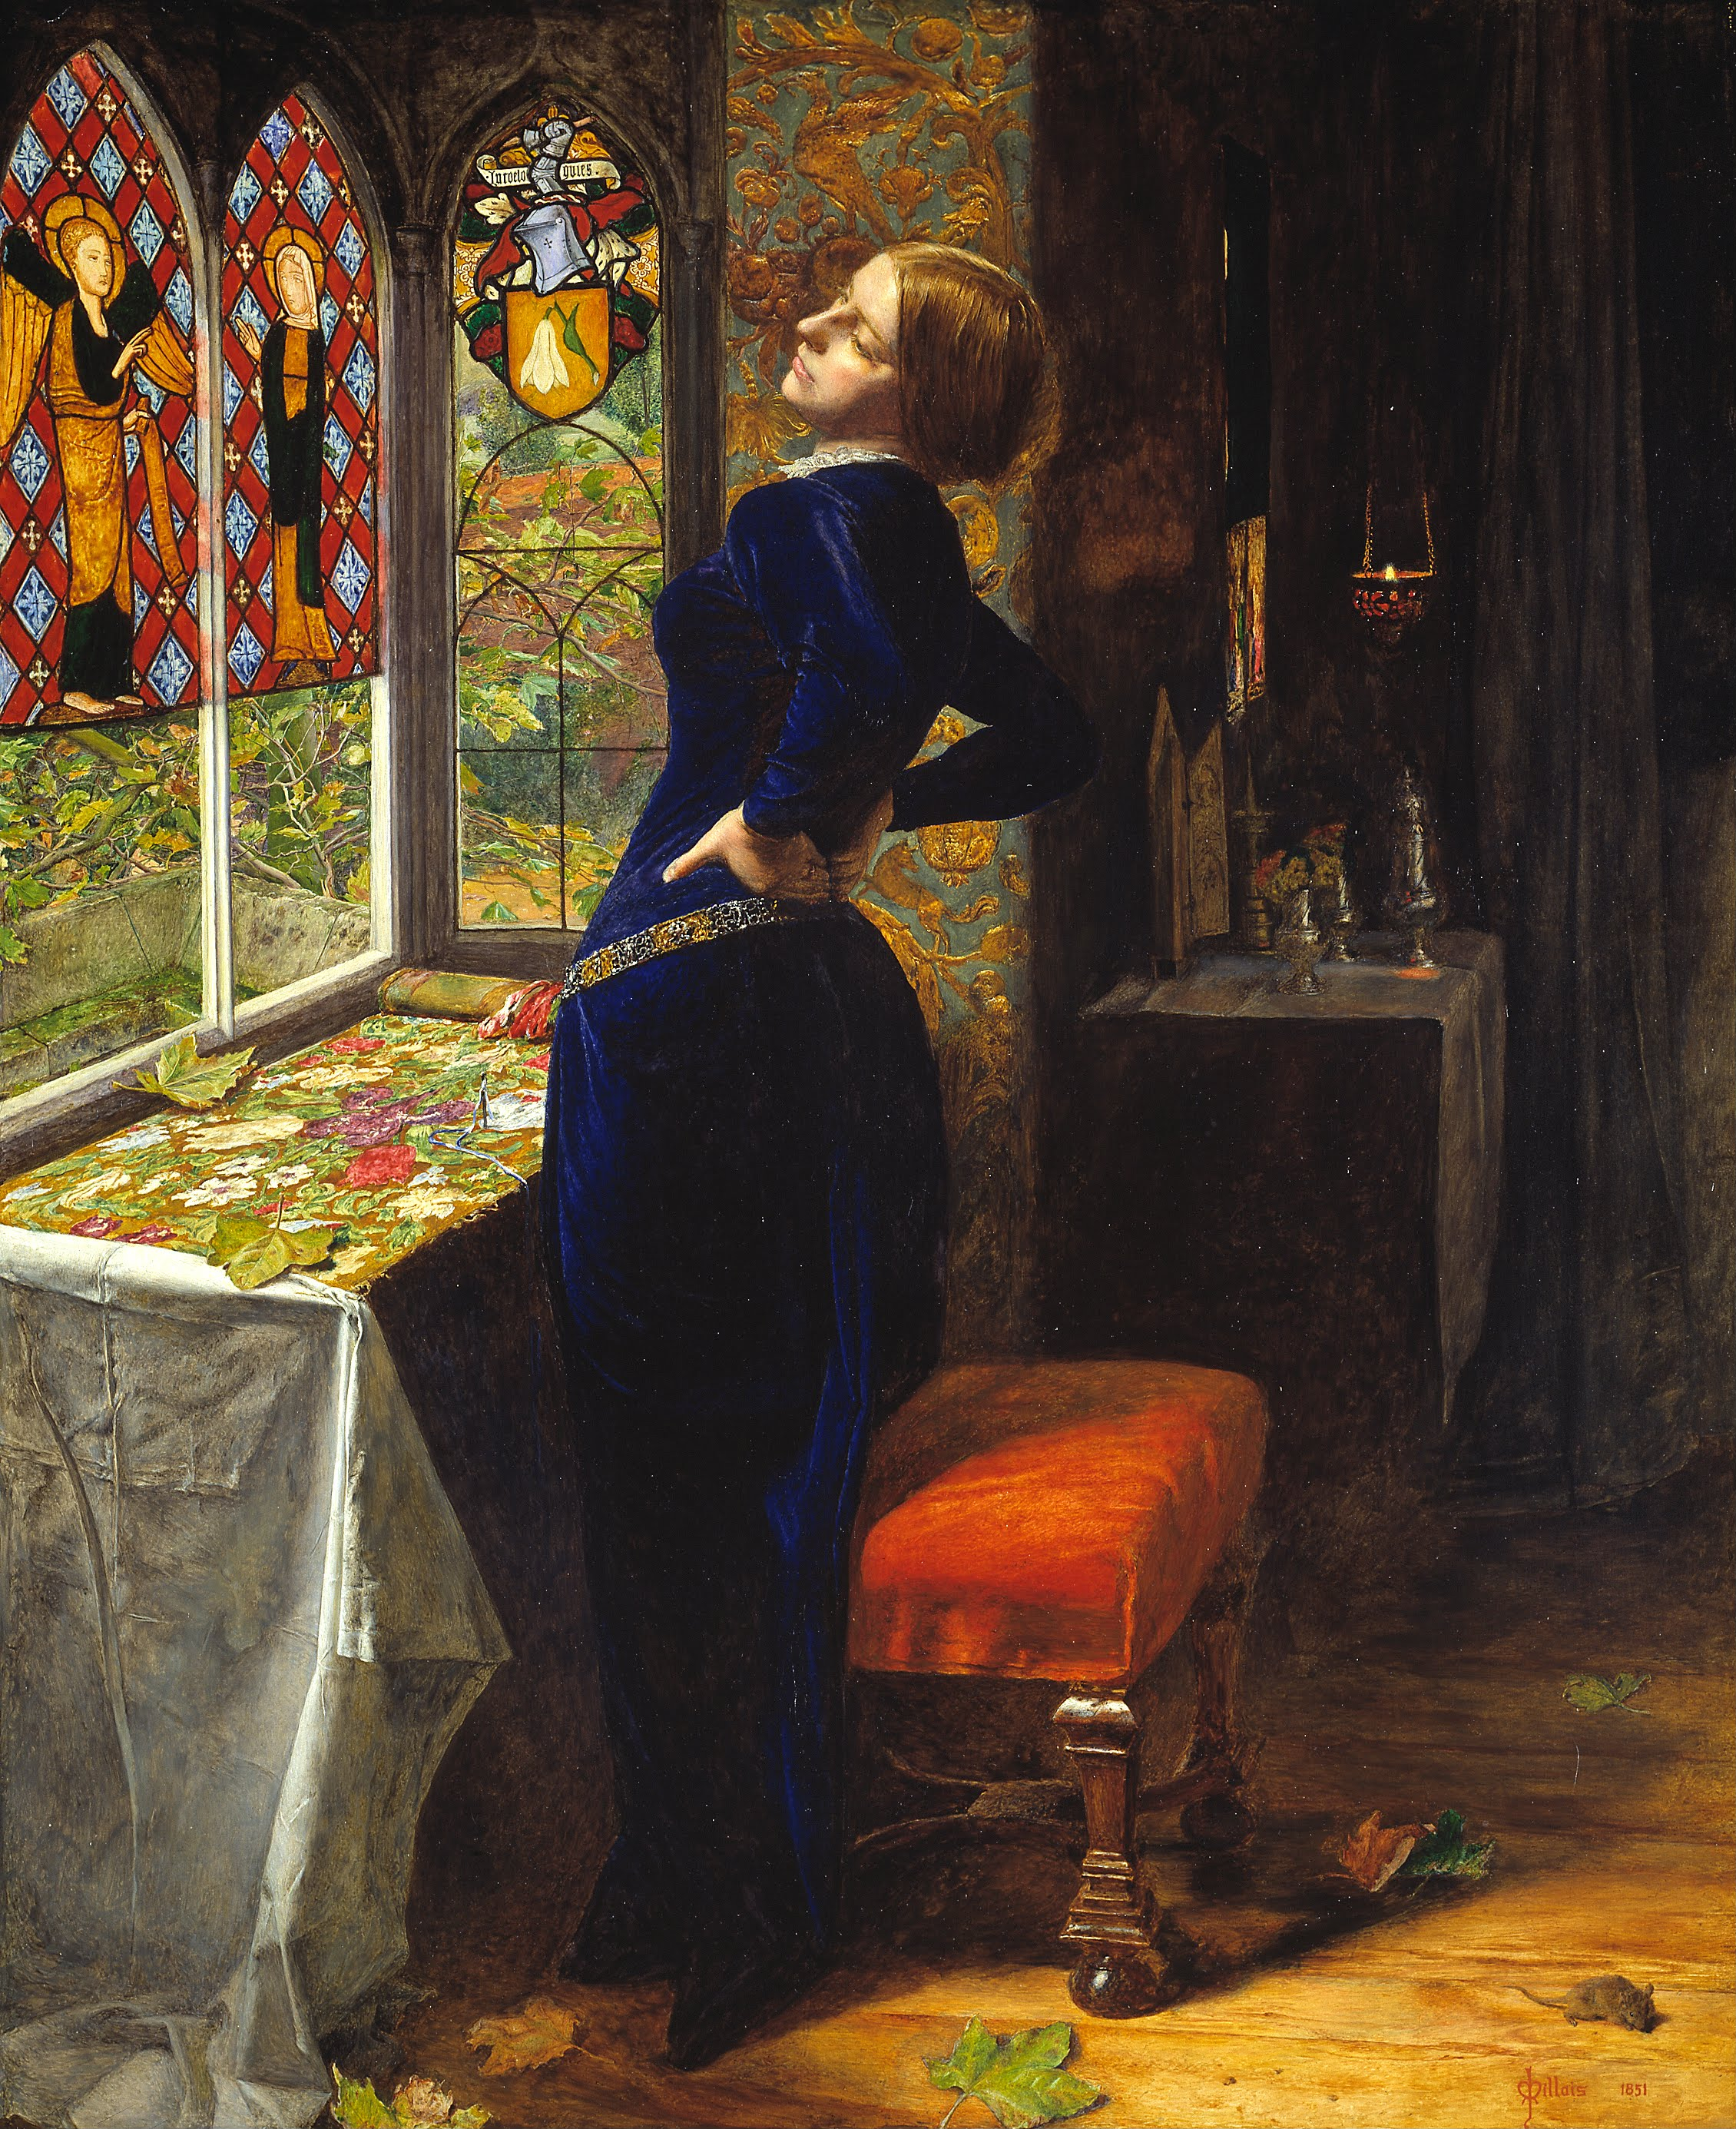 http://upload.wikimedia.org/wikipedia/commons/c/c8/John_Everett_Millais_-_Mariana_-_Google_Art_Project.jpg